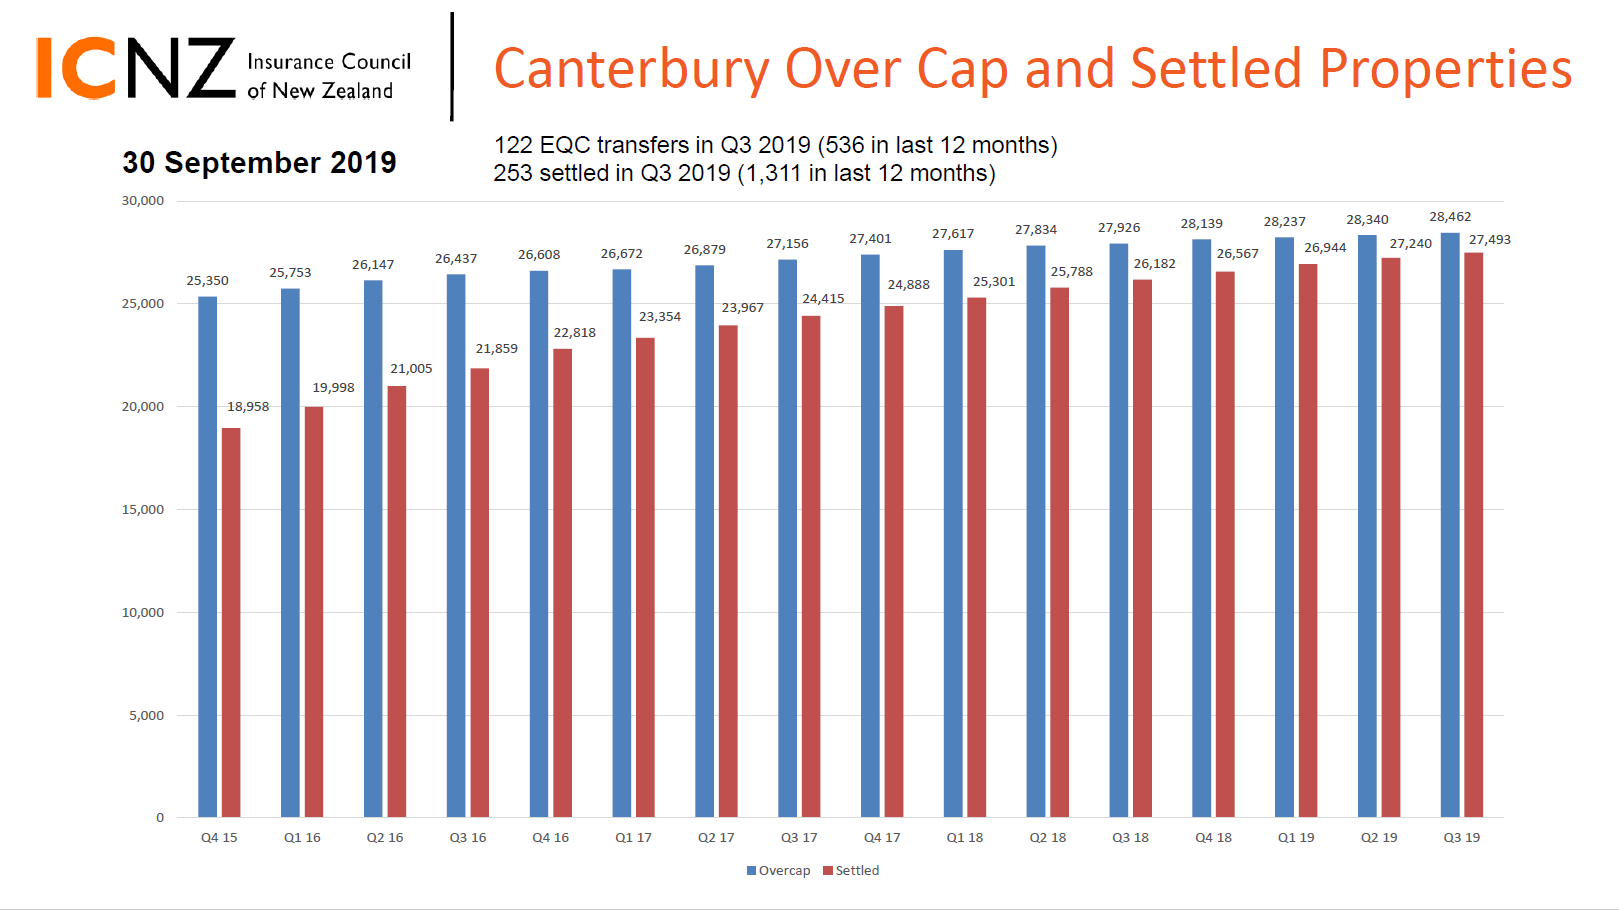 Image of the second page of the Q2 2019 Canterbury earthquake stats